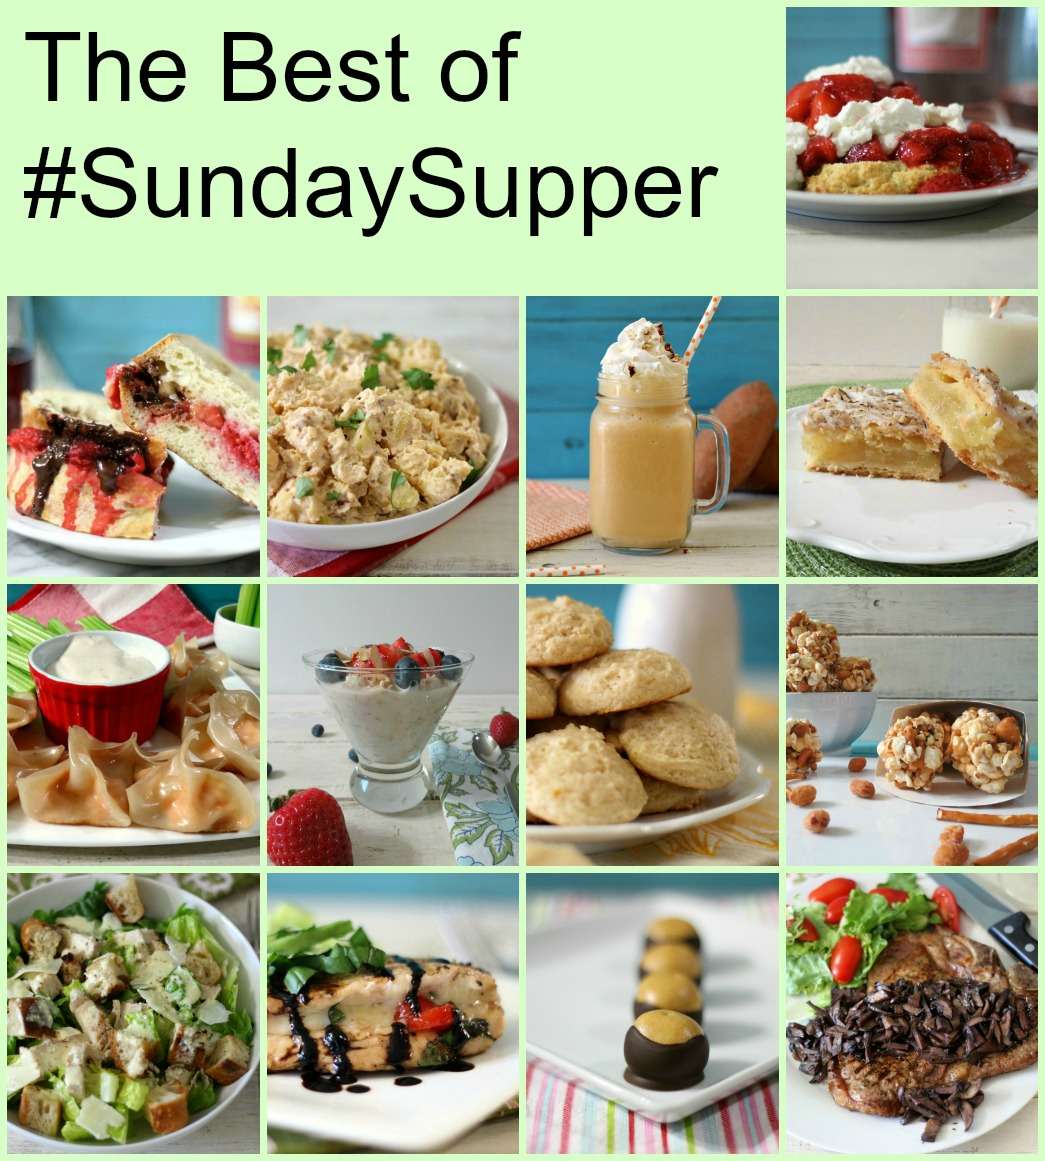 The Best of #SundaySupper